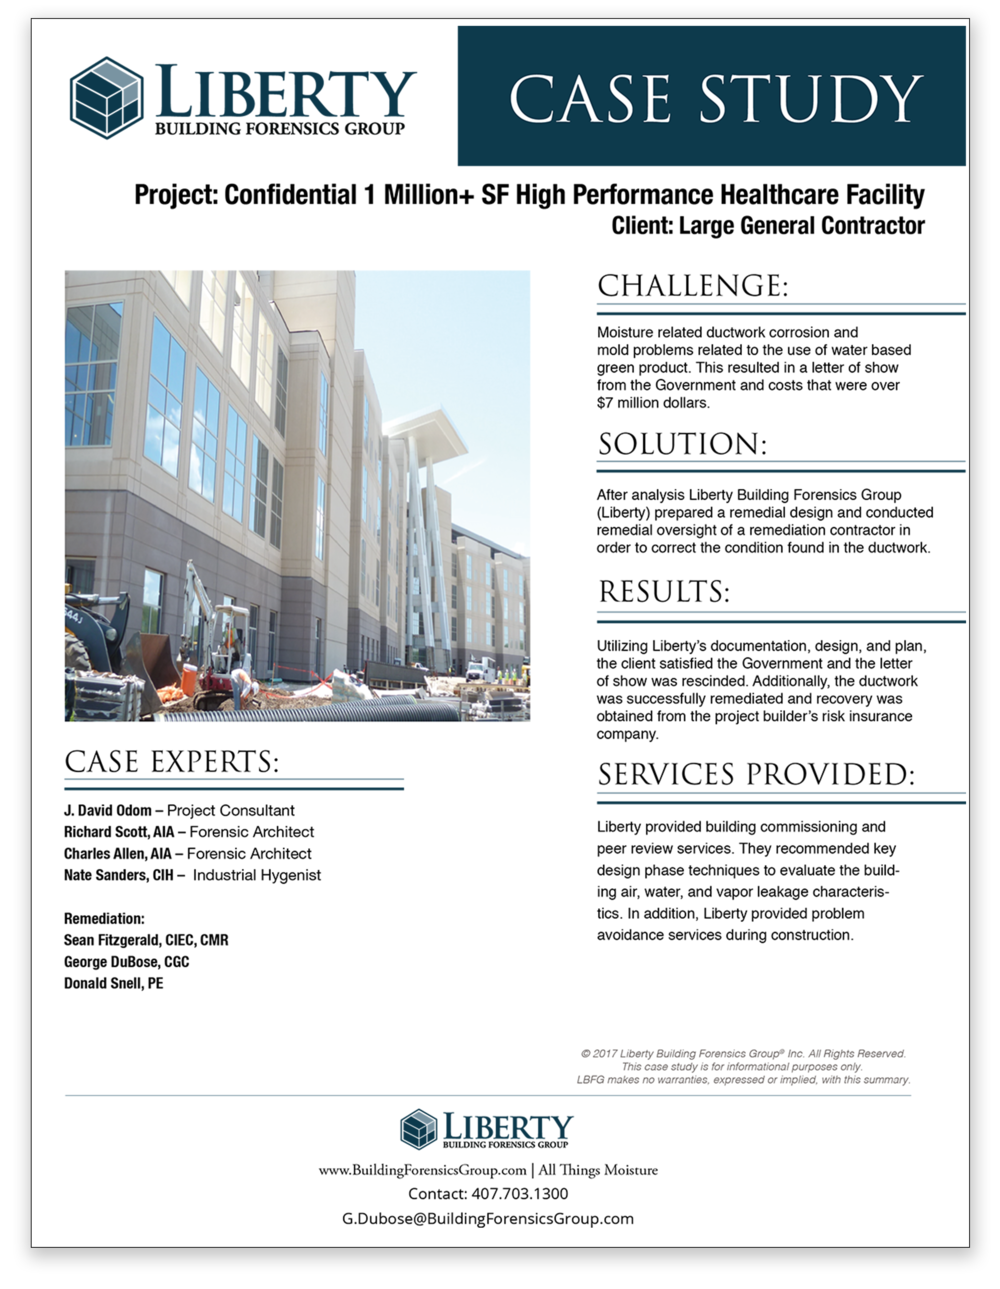 Case Study - Healthcare facility_042017@2x.png